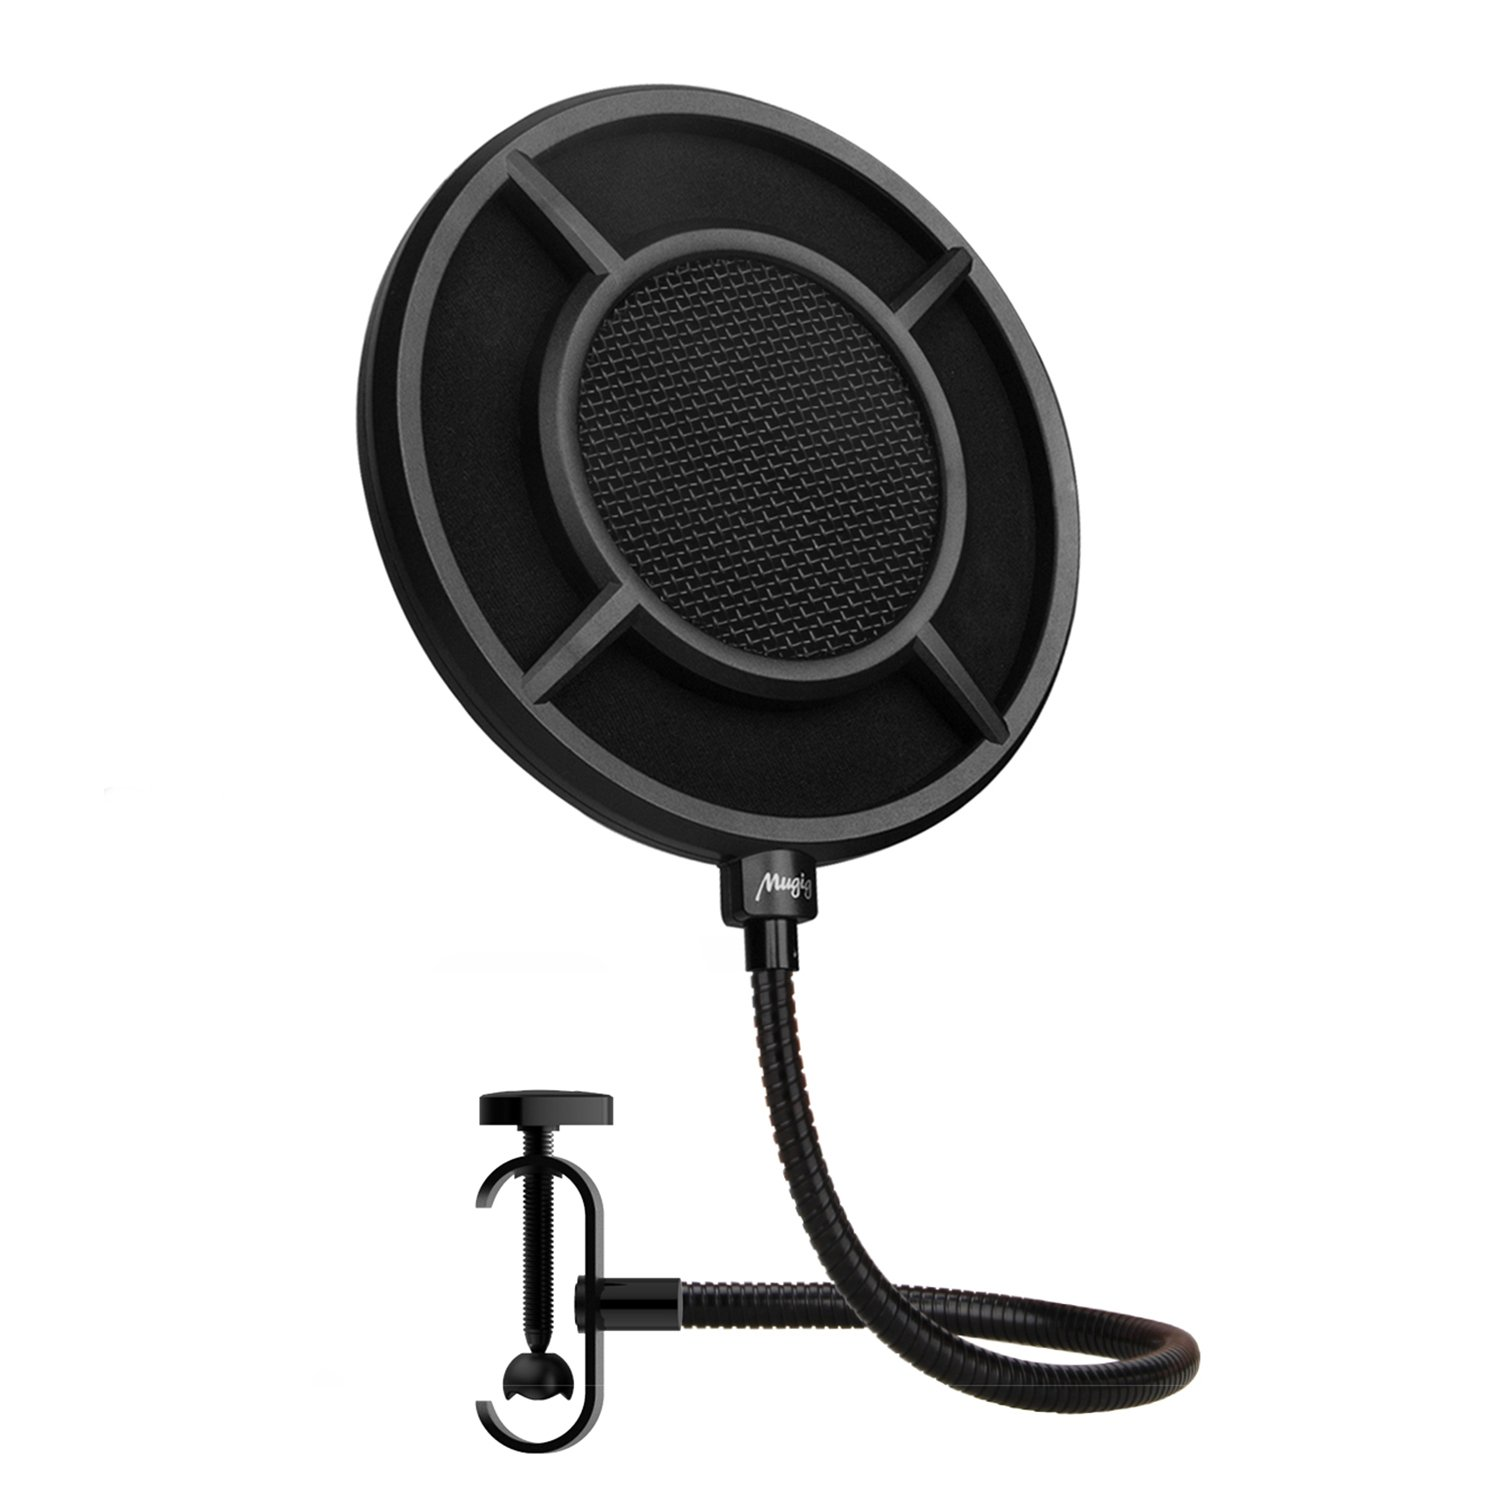 Mugig Pop Filter Double Nylon layer with Mesh Metal Mezzanine, Studio Microphone Wind Screen for Recording and Broadcasting 6 inch NP-1 Upgrade